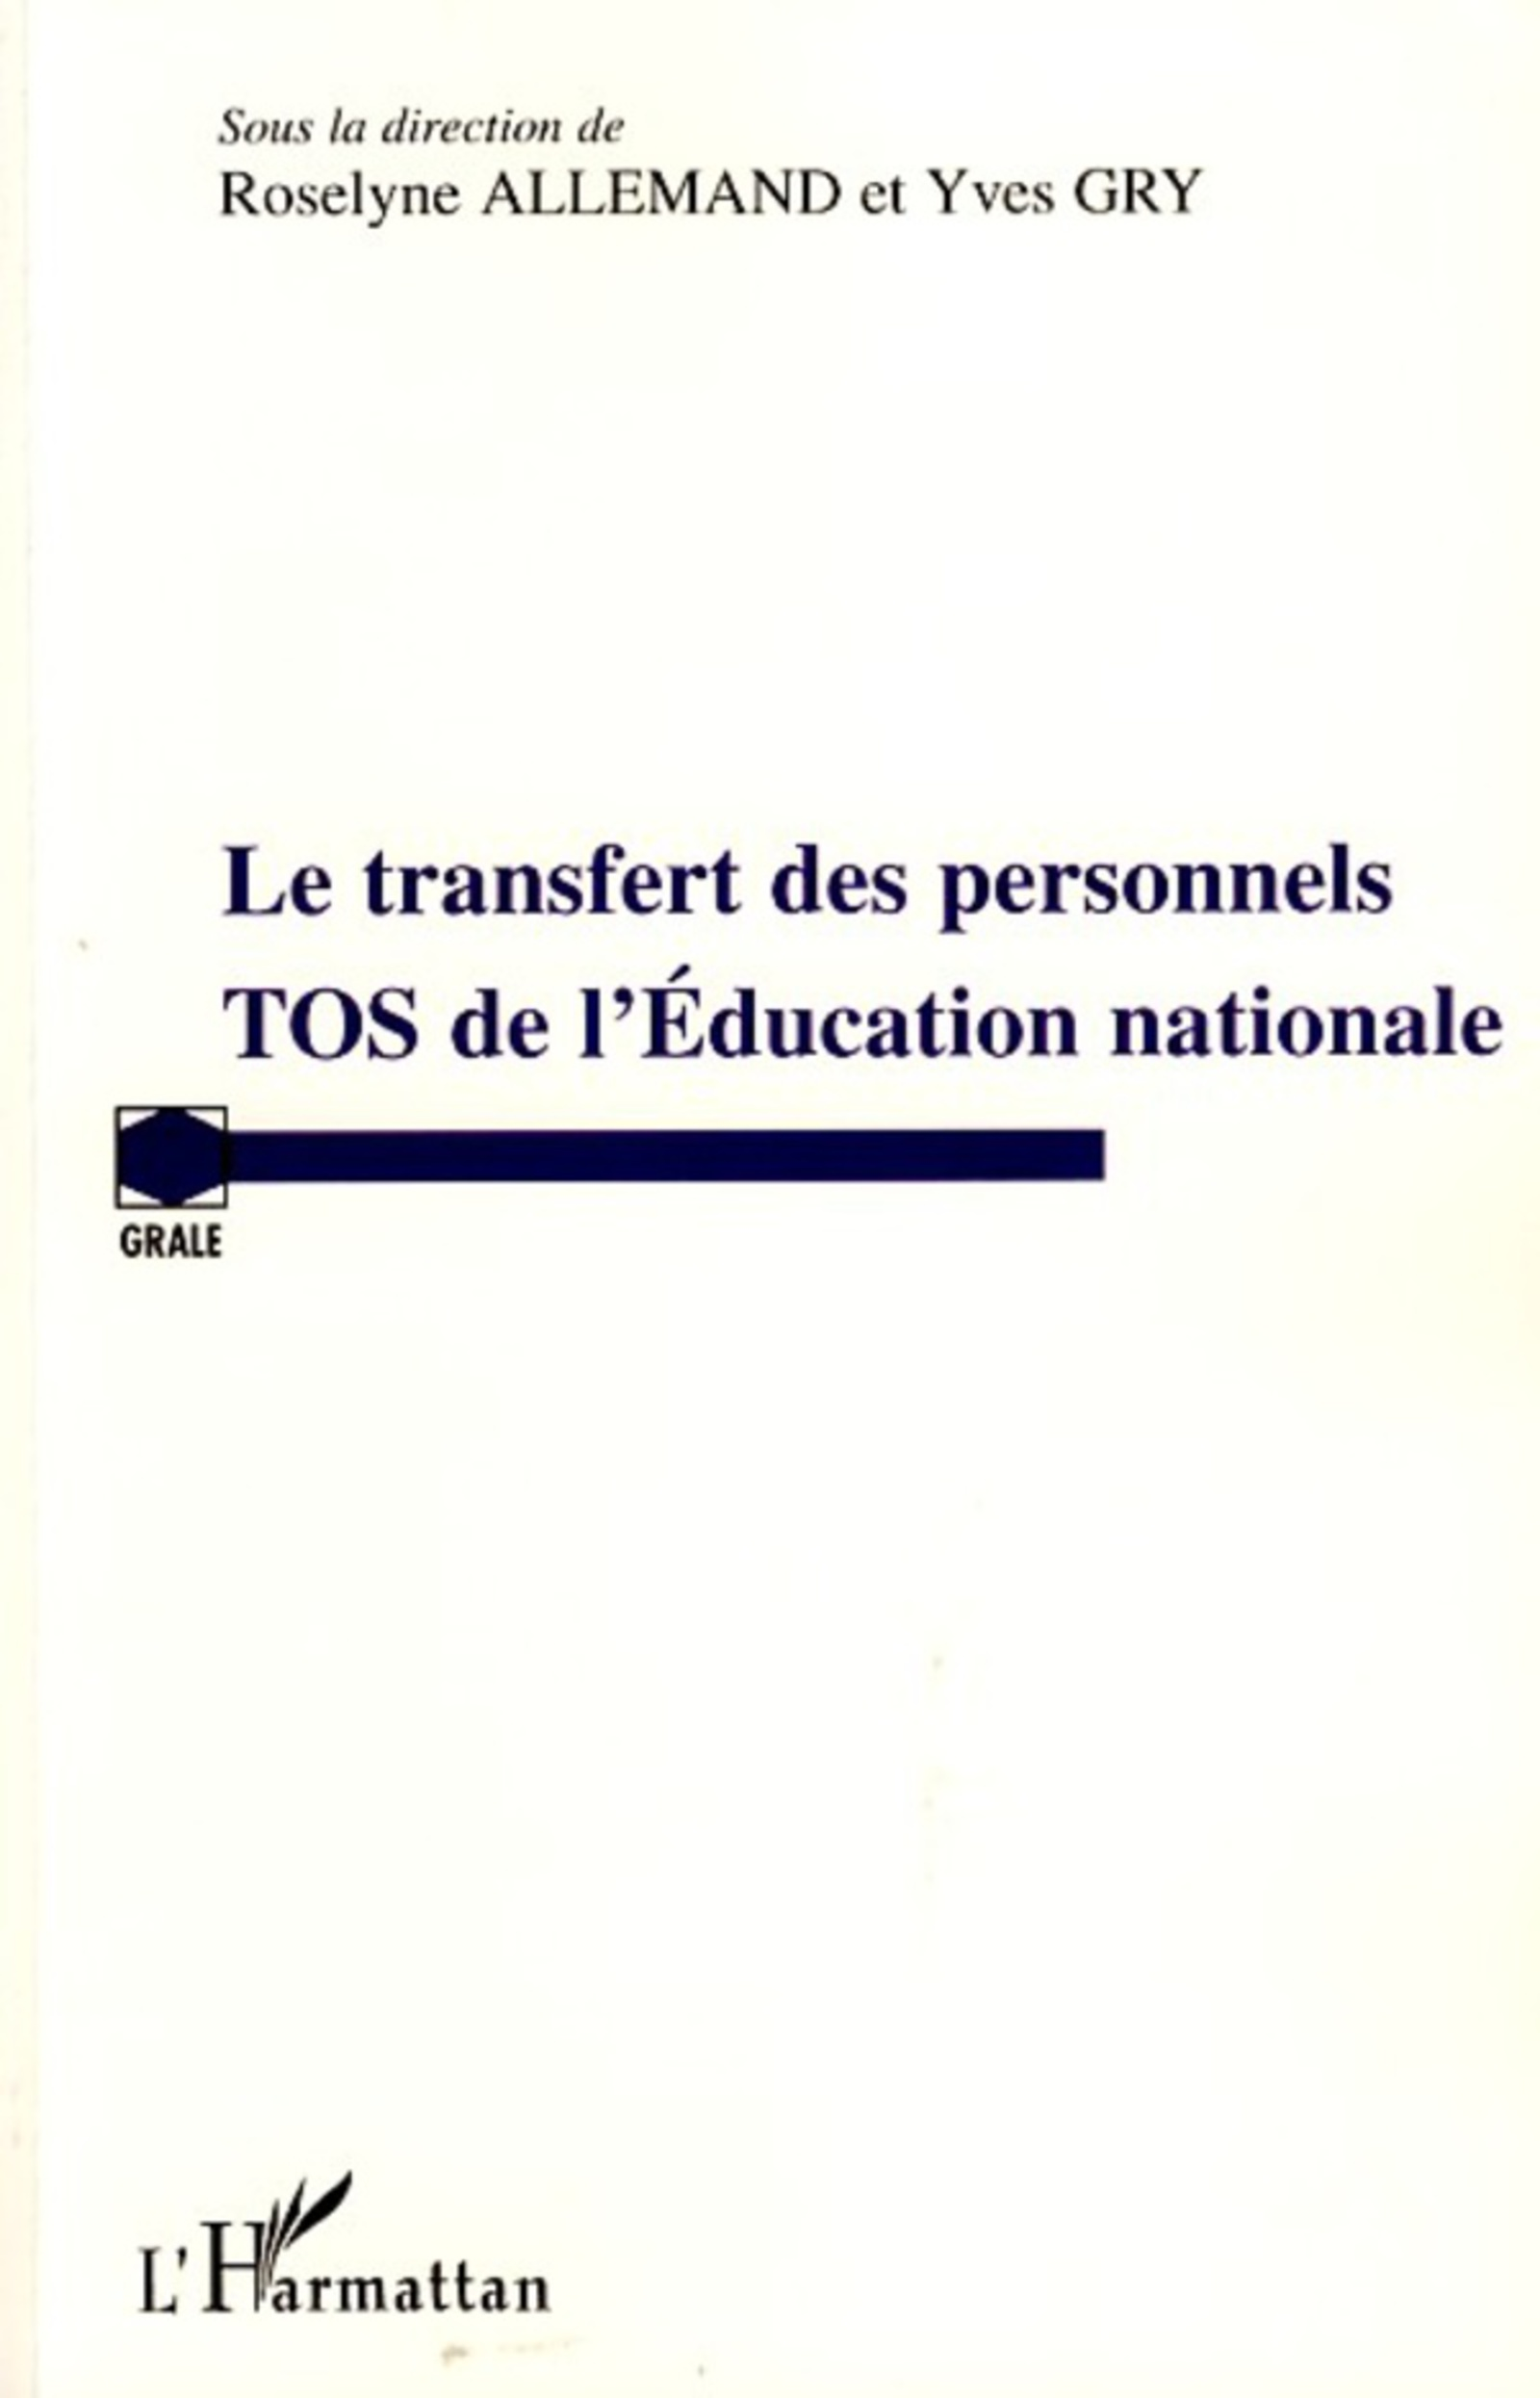 Le transfert des personnels TOS de lEducation nationale (French Edition)